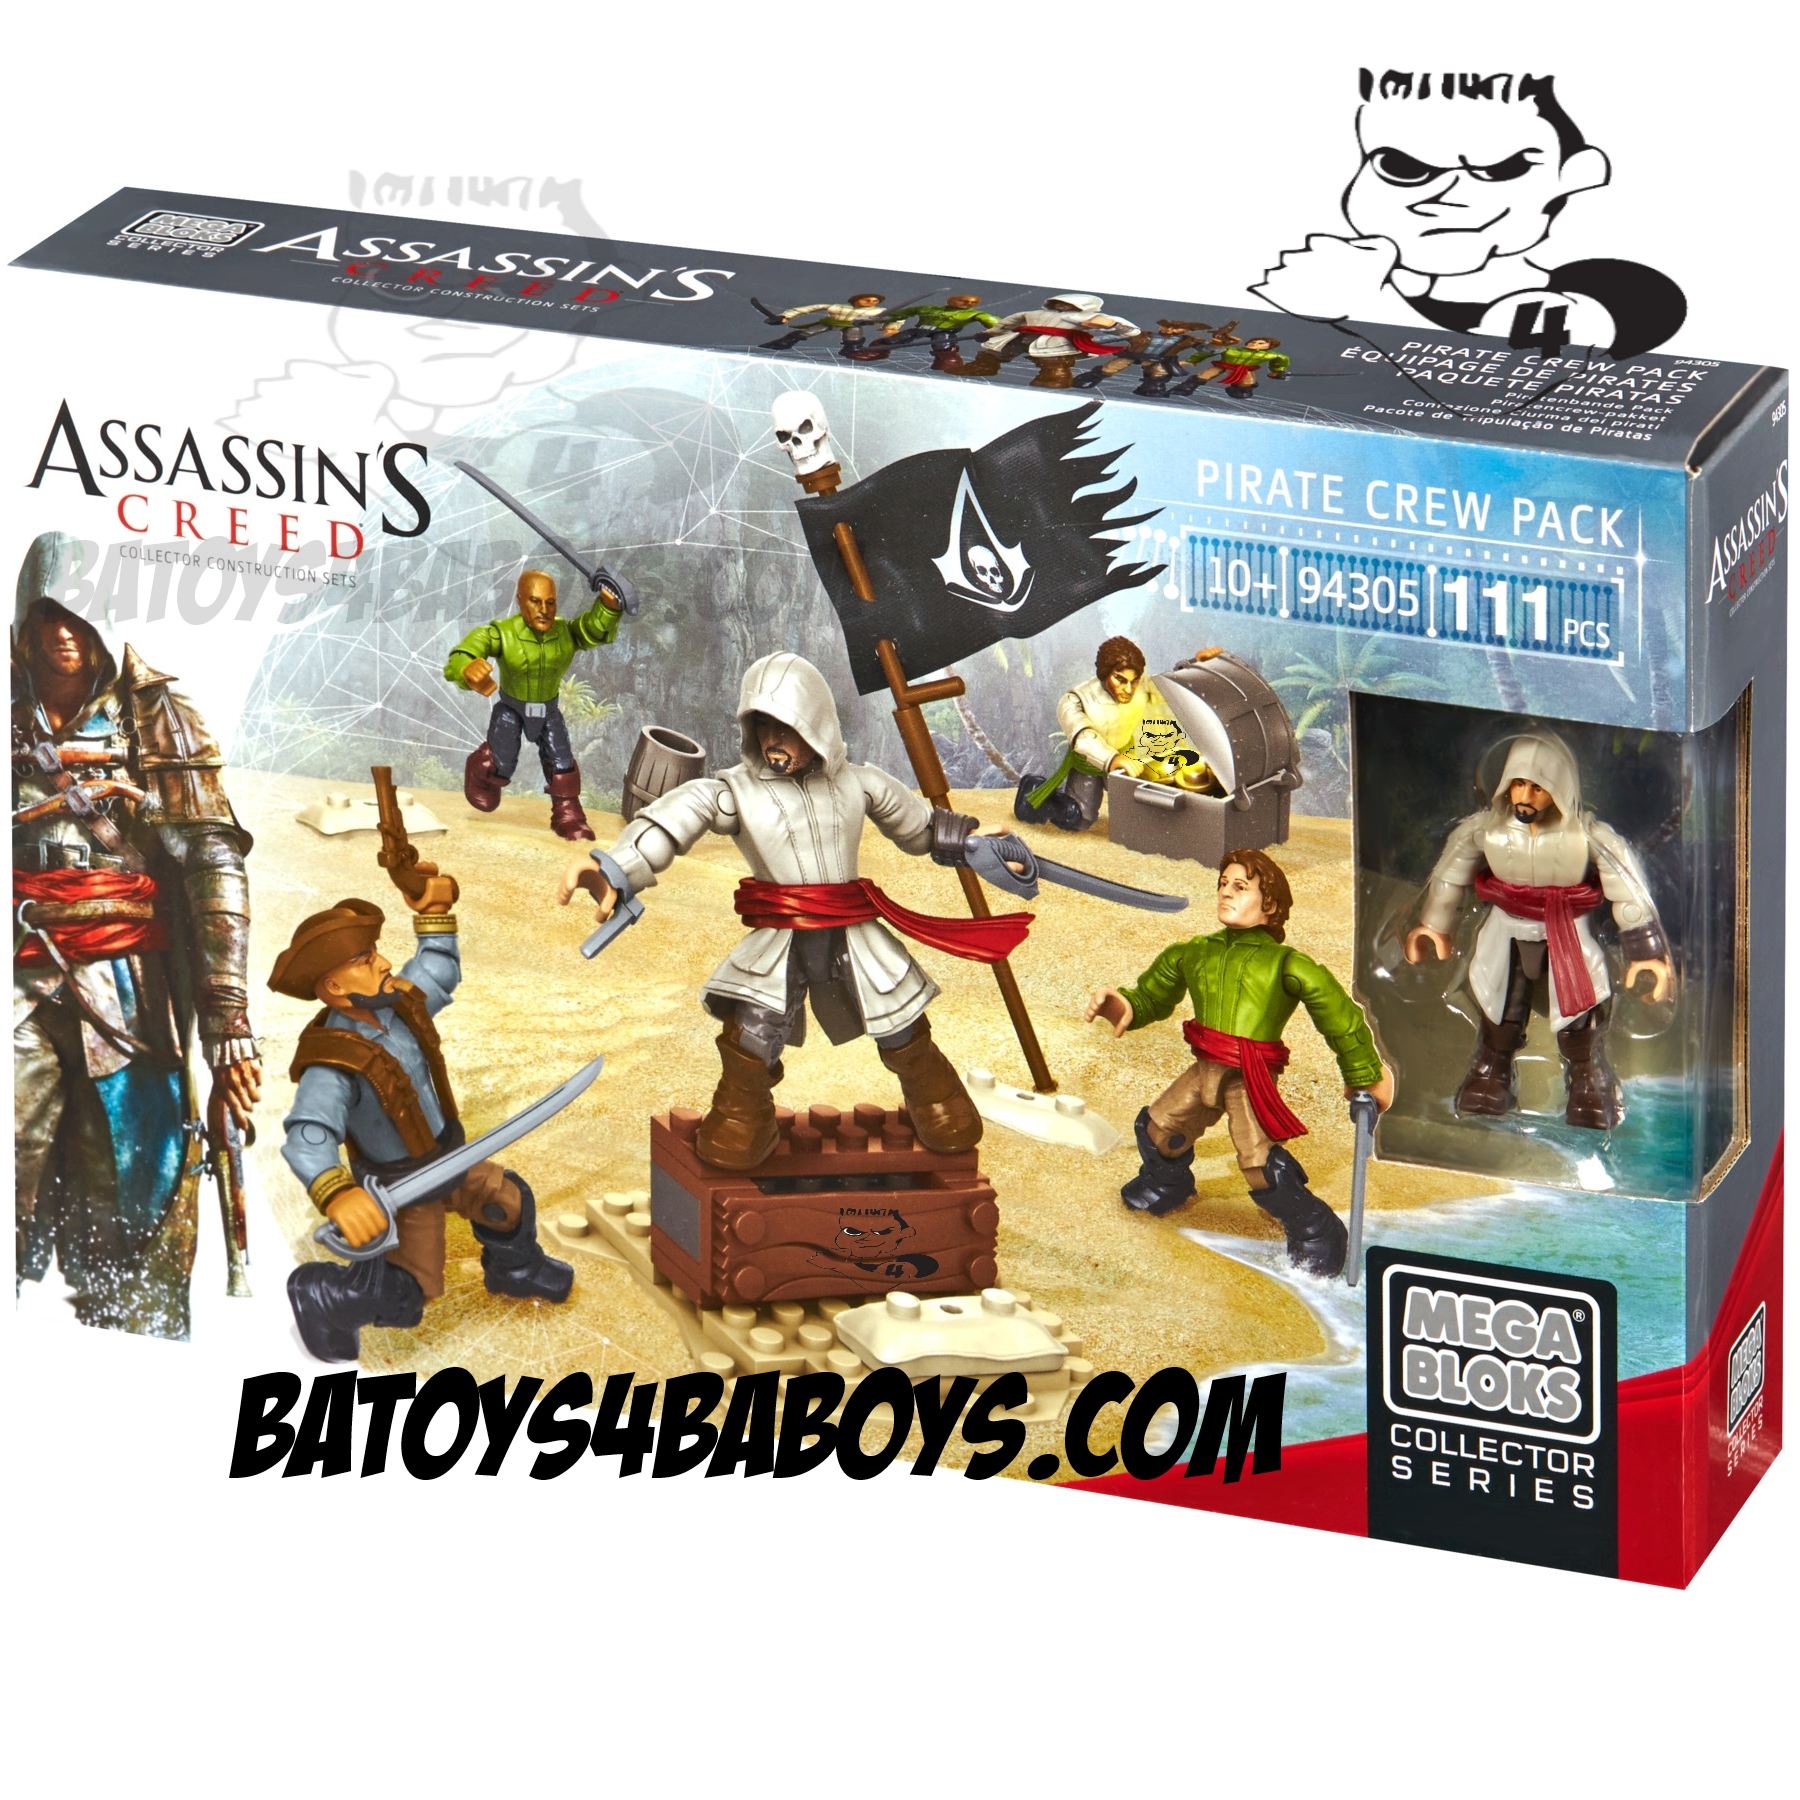 2014 Mega Bloks Assassin's Creed Pirate Crew Pack officially licensed Mega Bloks Assassin's Creed product at B.A. Toys.